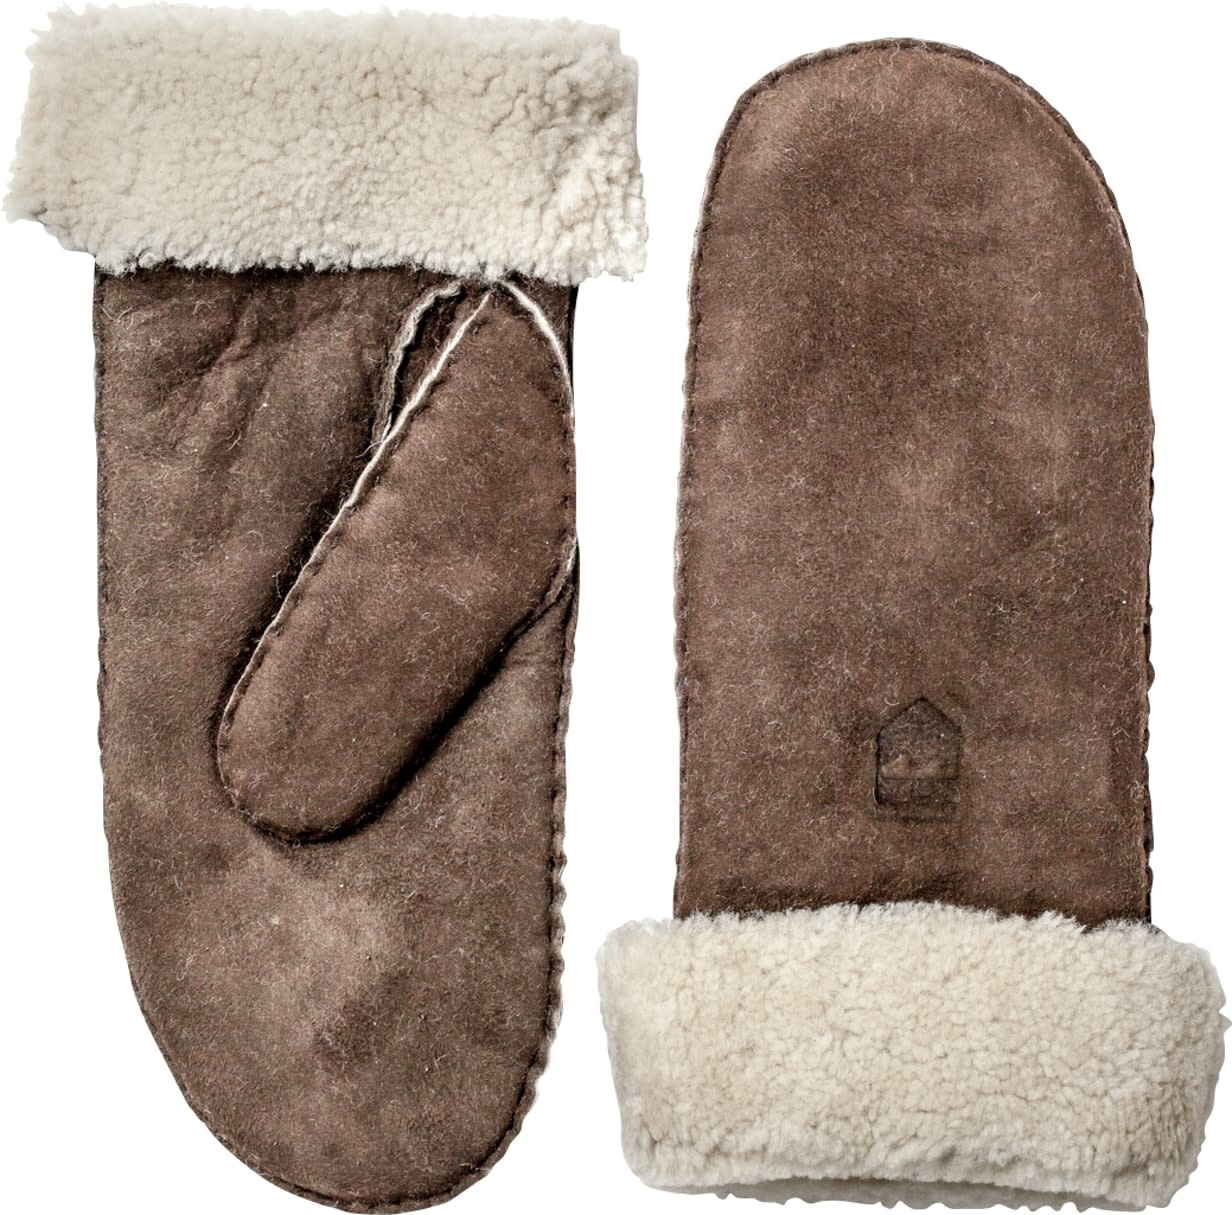 Sheepskin Leather Mitt Espresso Brown-2